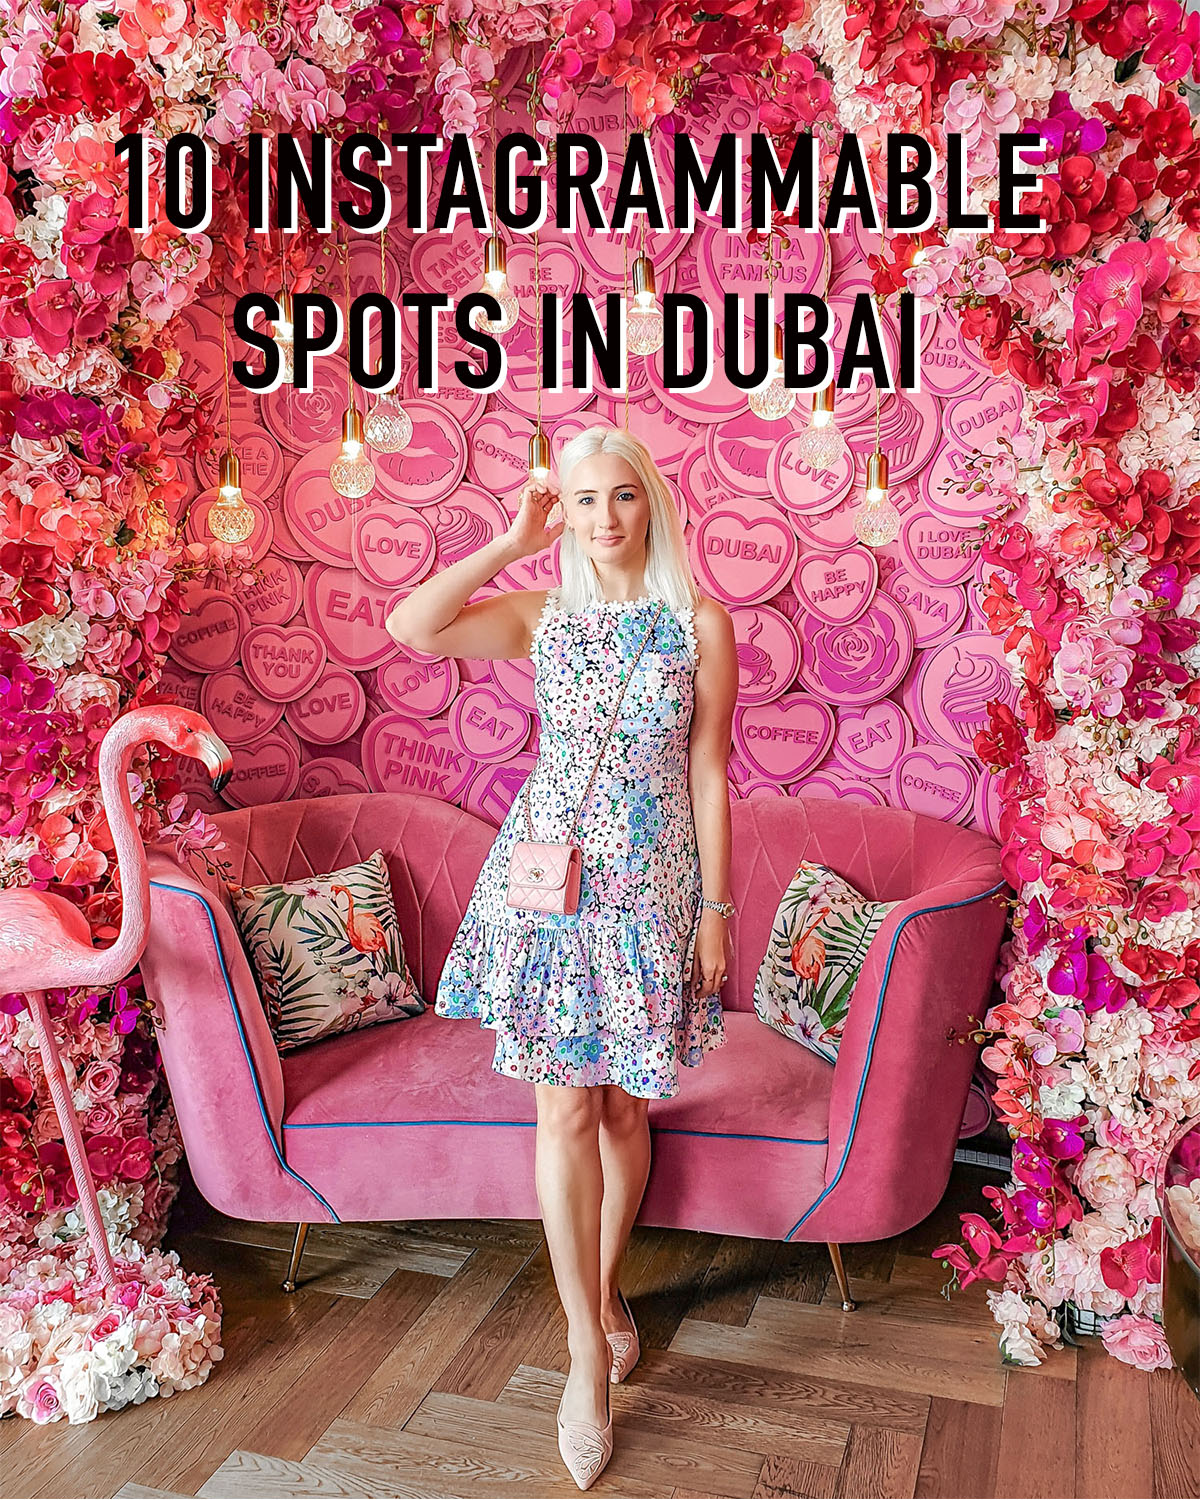 10 instagrammable spots in dubai | where to take your outfit photos in the summer